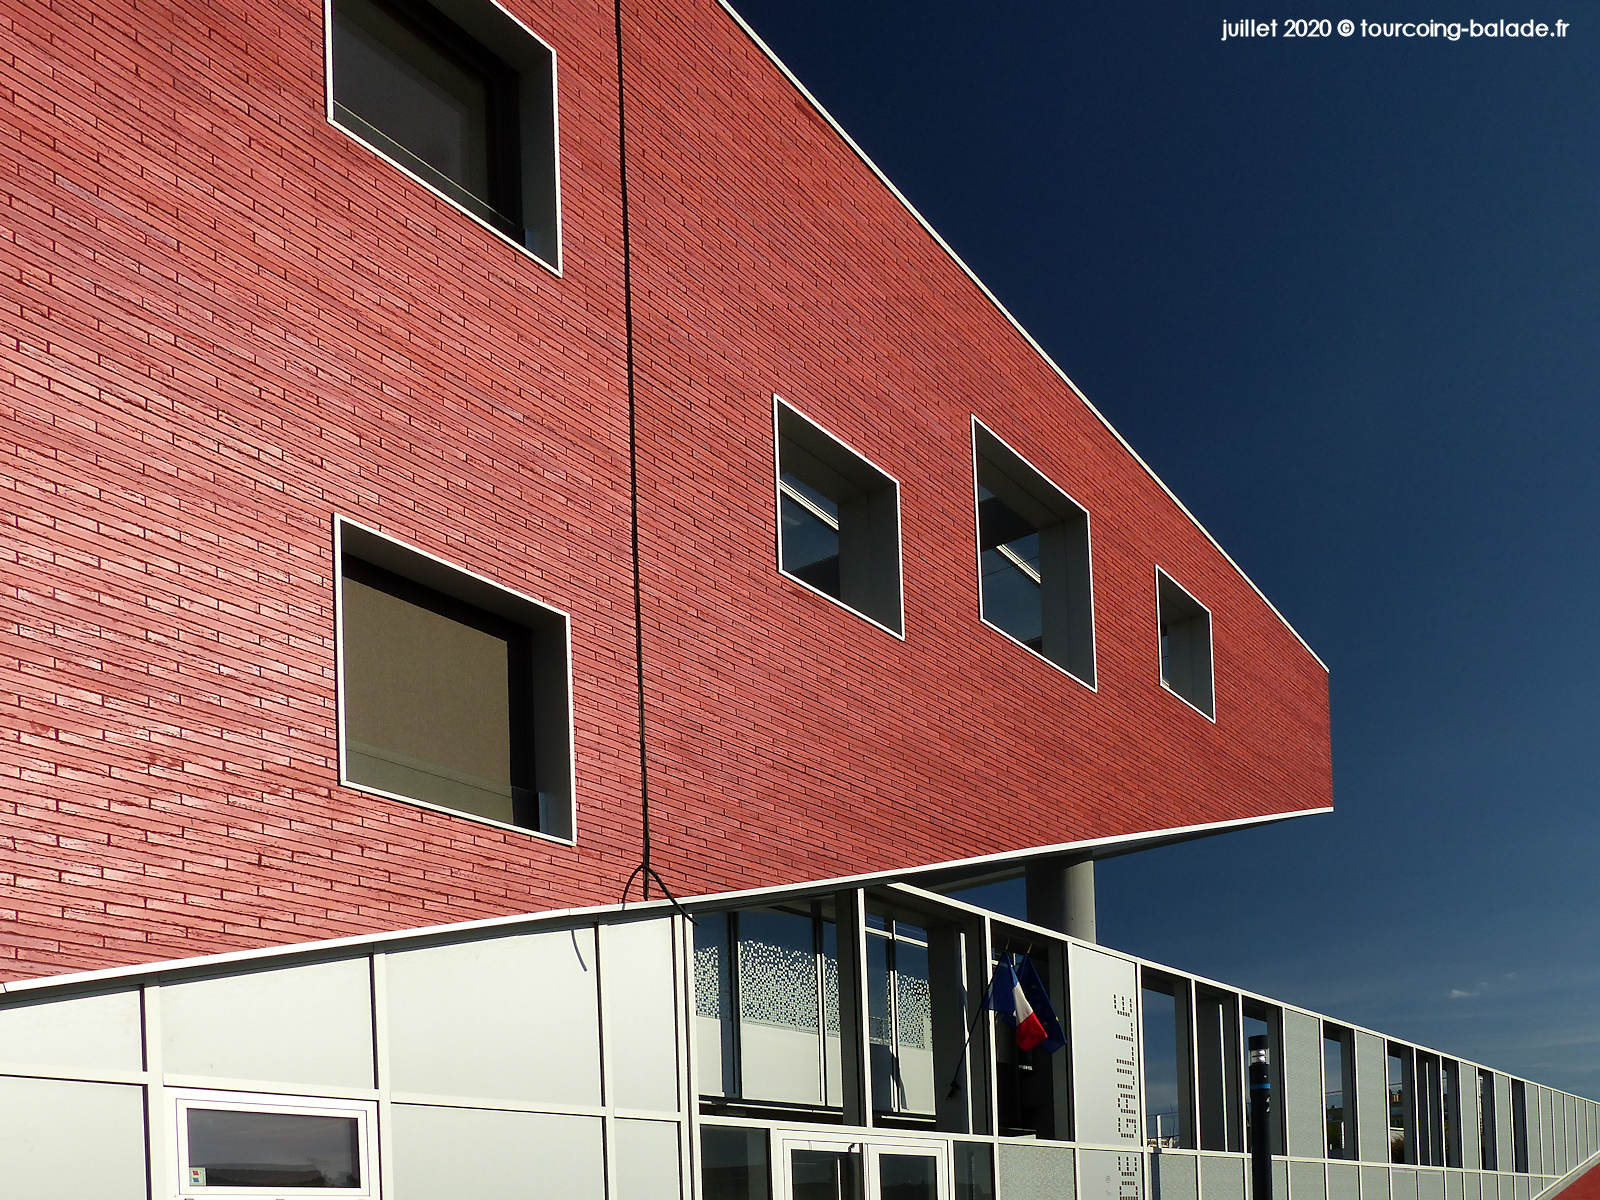 Architecture moderne Tourcoing 2020